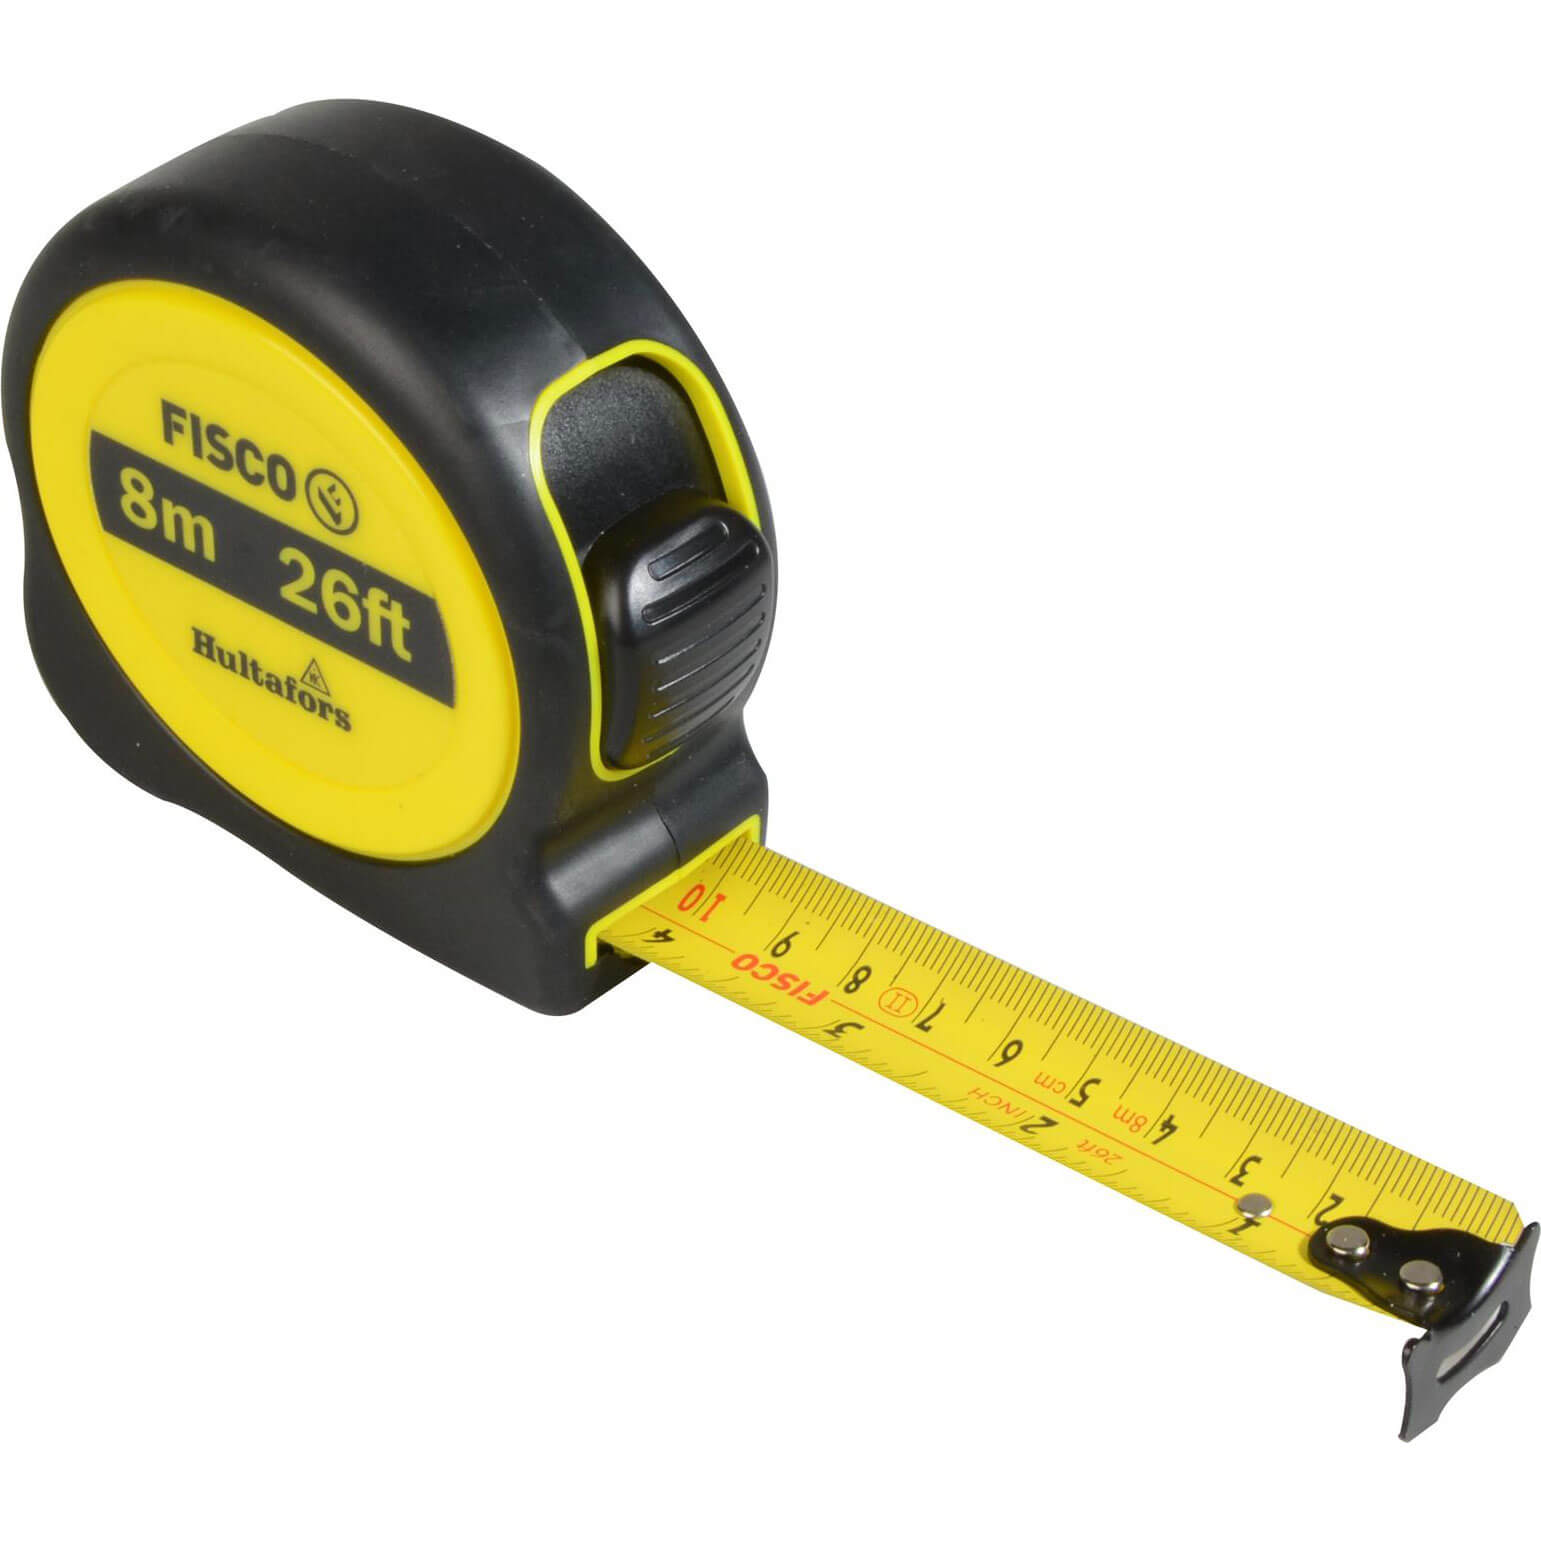 Image of Hultafors A1-Plus Hi-Vis Tape Measure Imperial & Metric 26ft / 8m 25mm